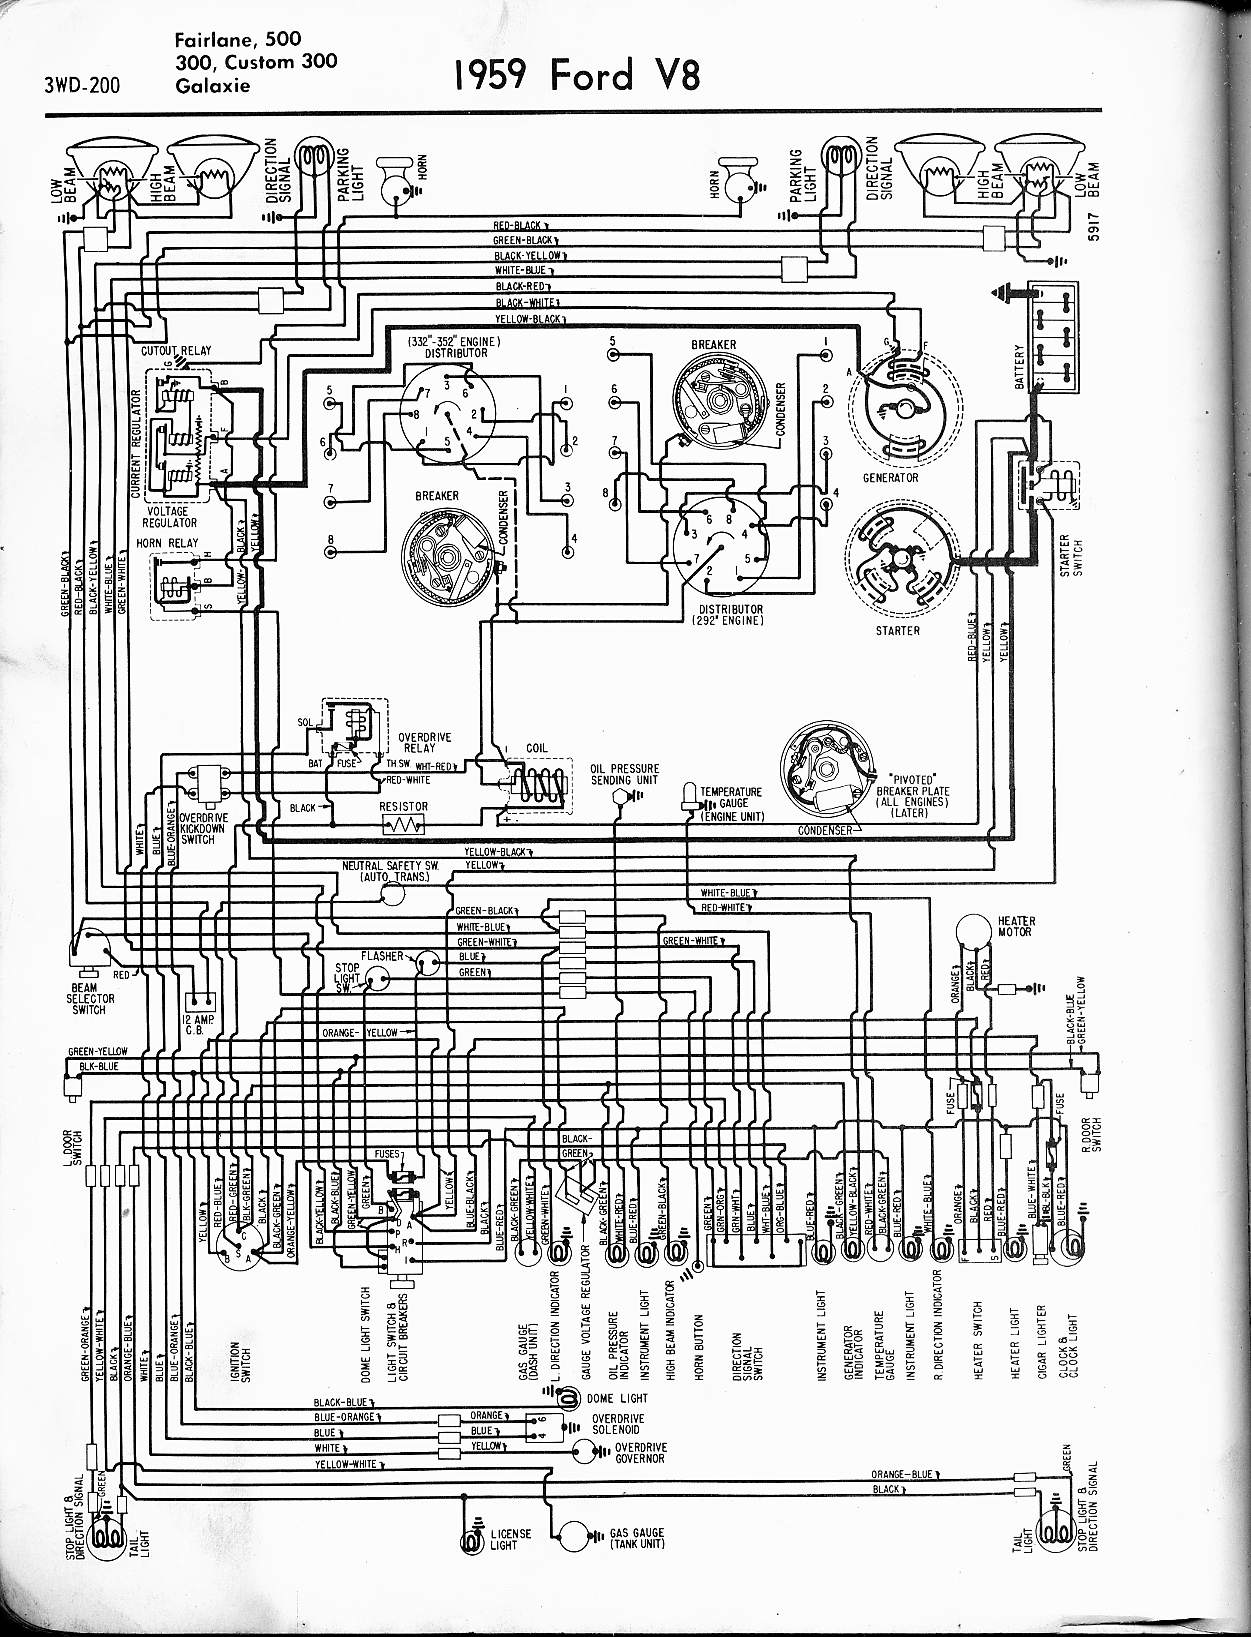 1959 ford galaxie wiring diagram schematic diagrams rh ogmconsulting co